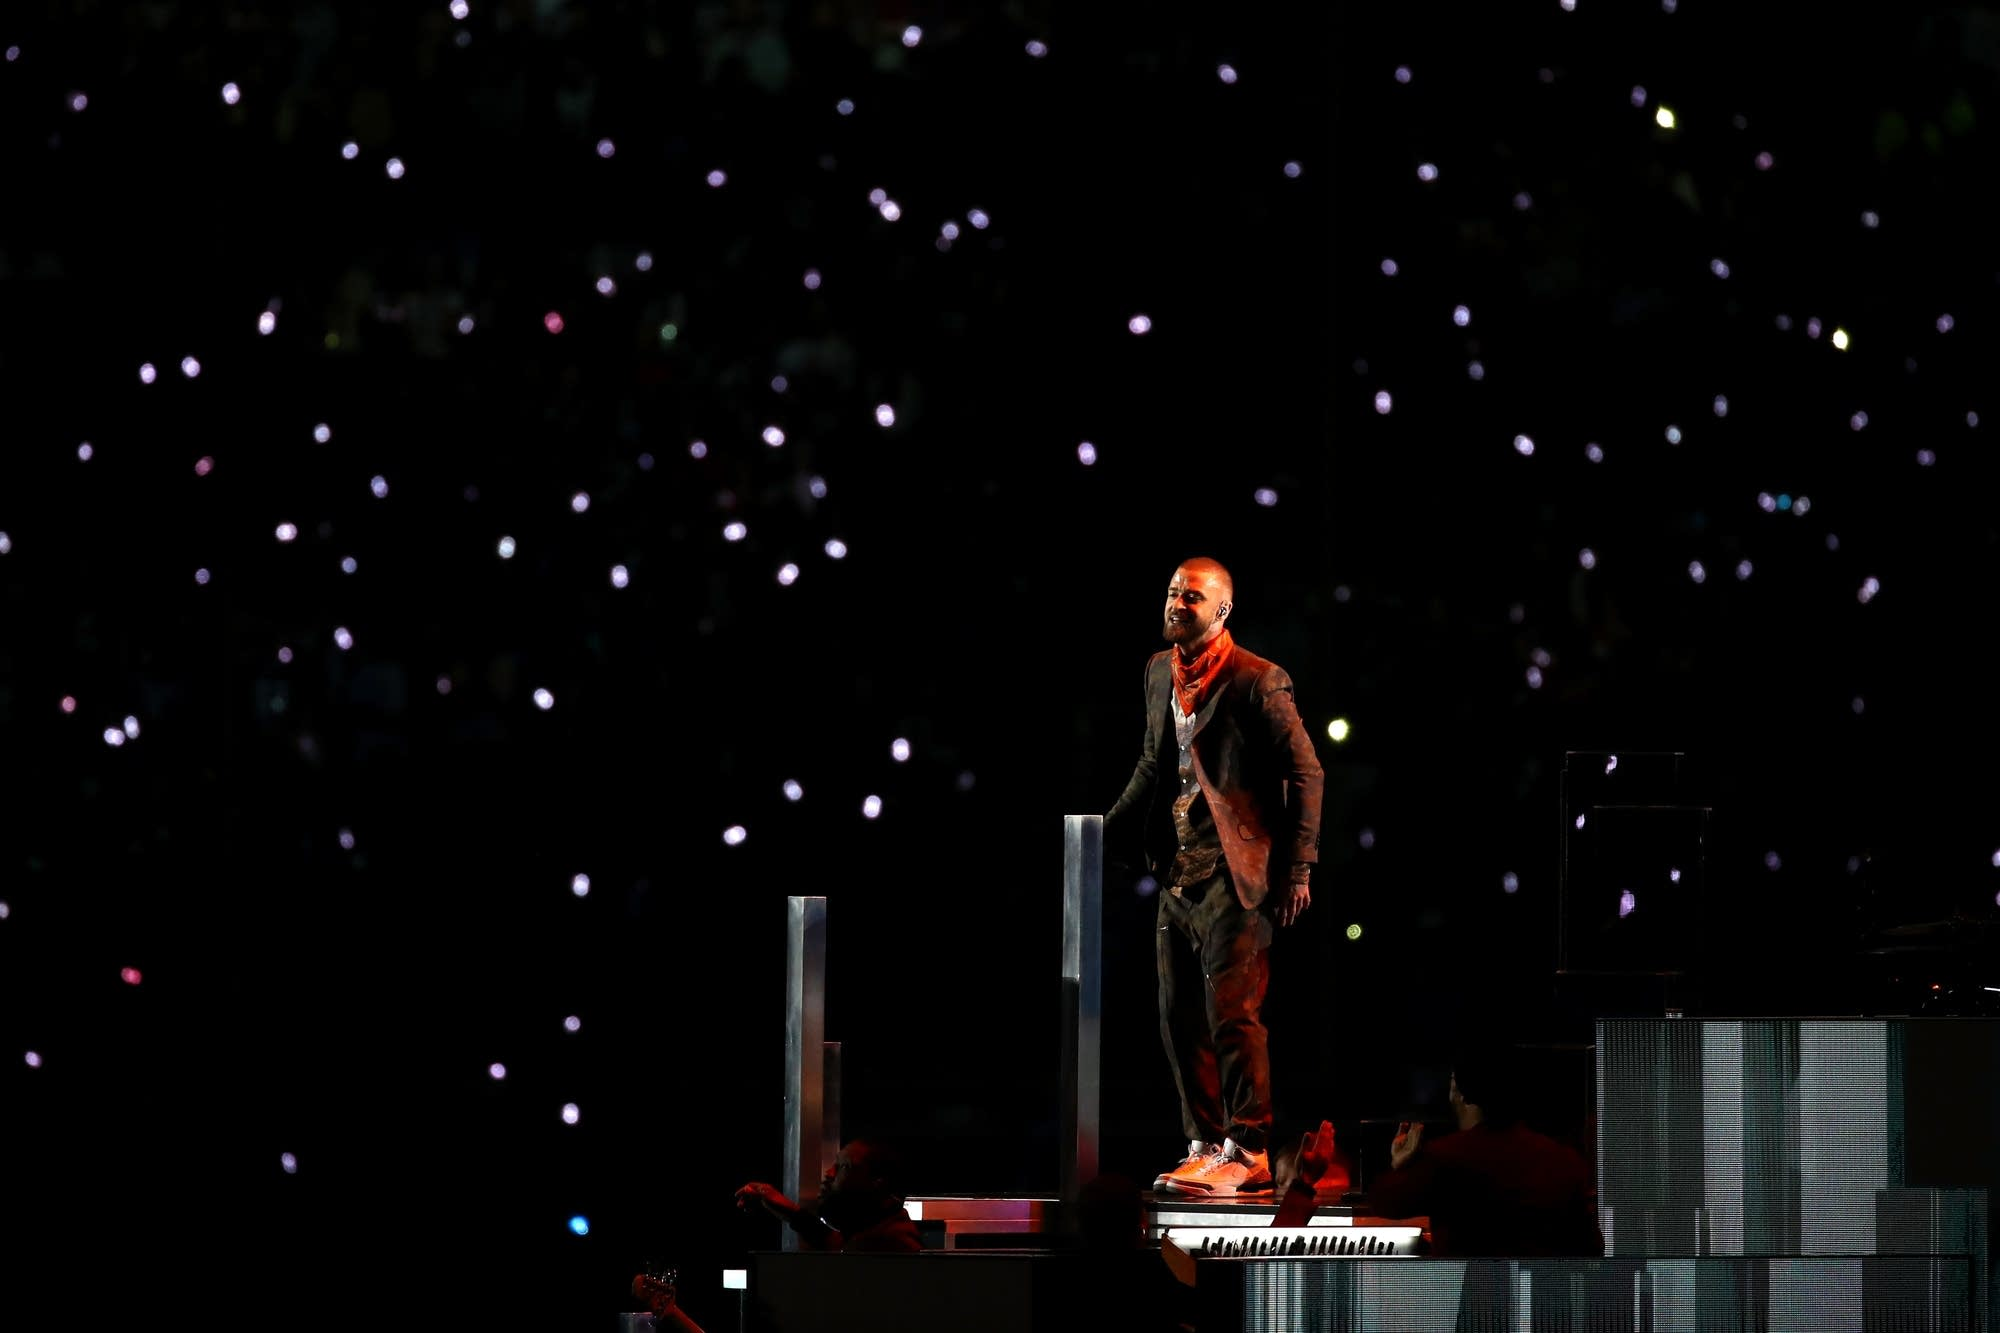 Justin Timberlake performs during the Super Bowl LII Halftime Show.